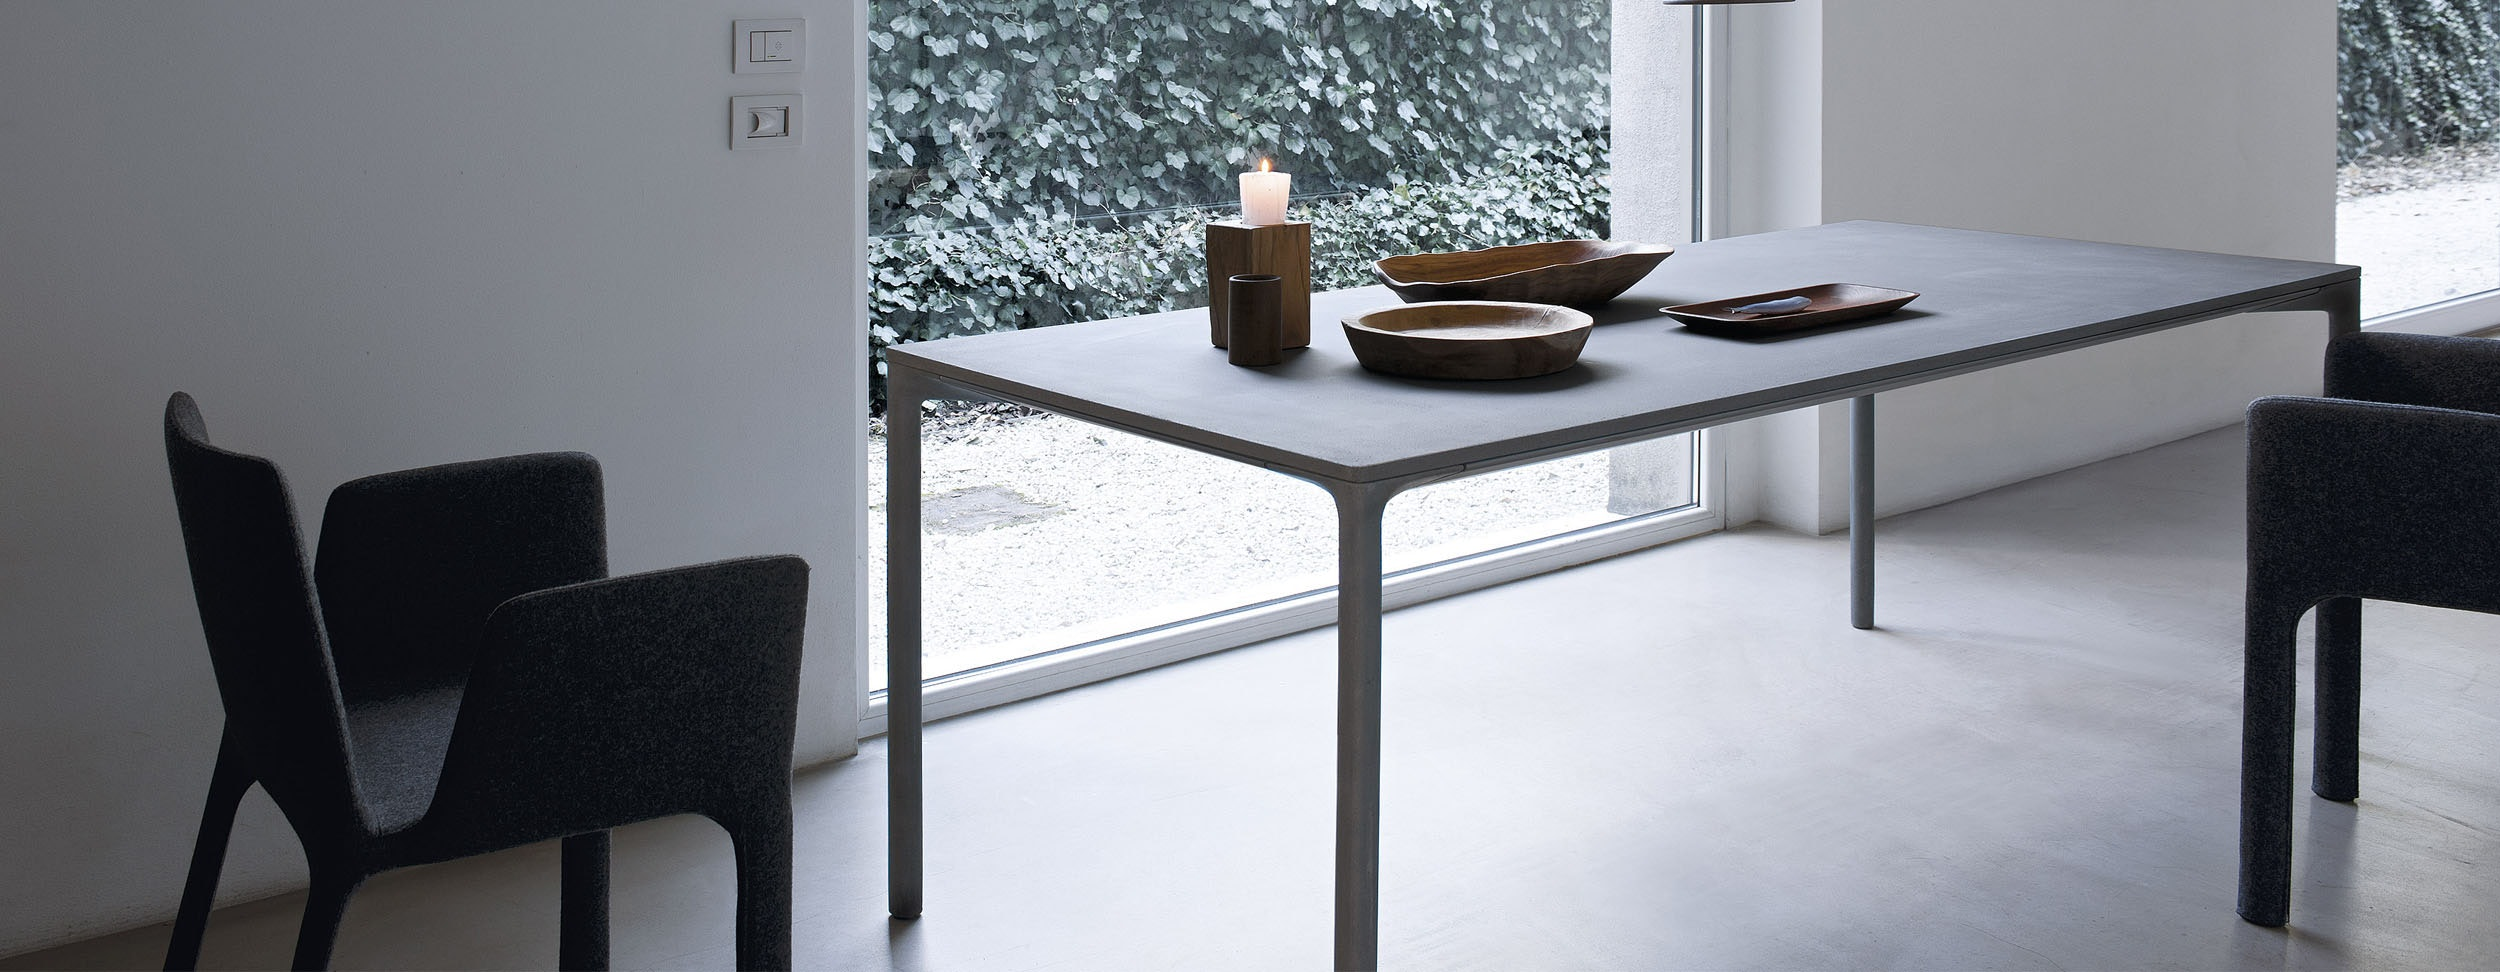 Large Dining Tables & Large Dining Tables - Fanuli Furniture